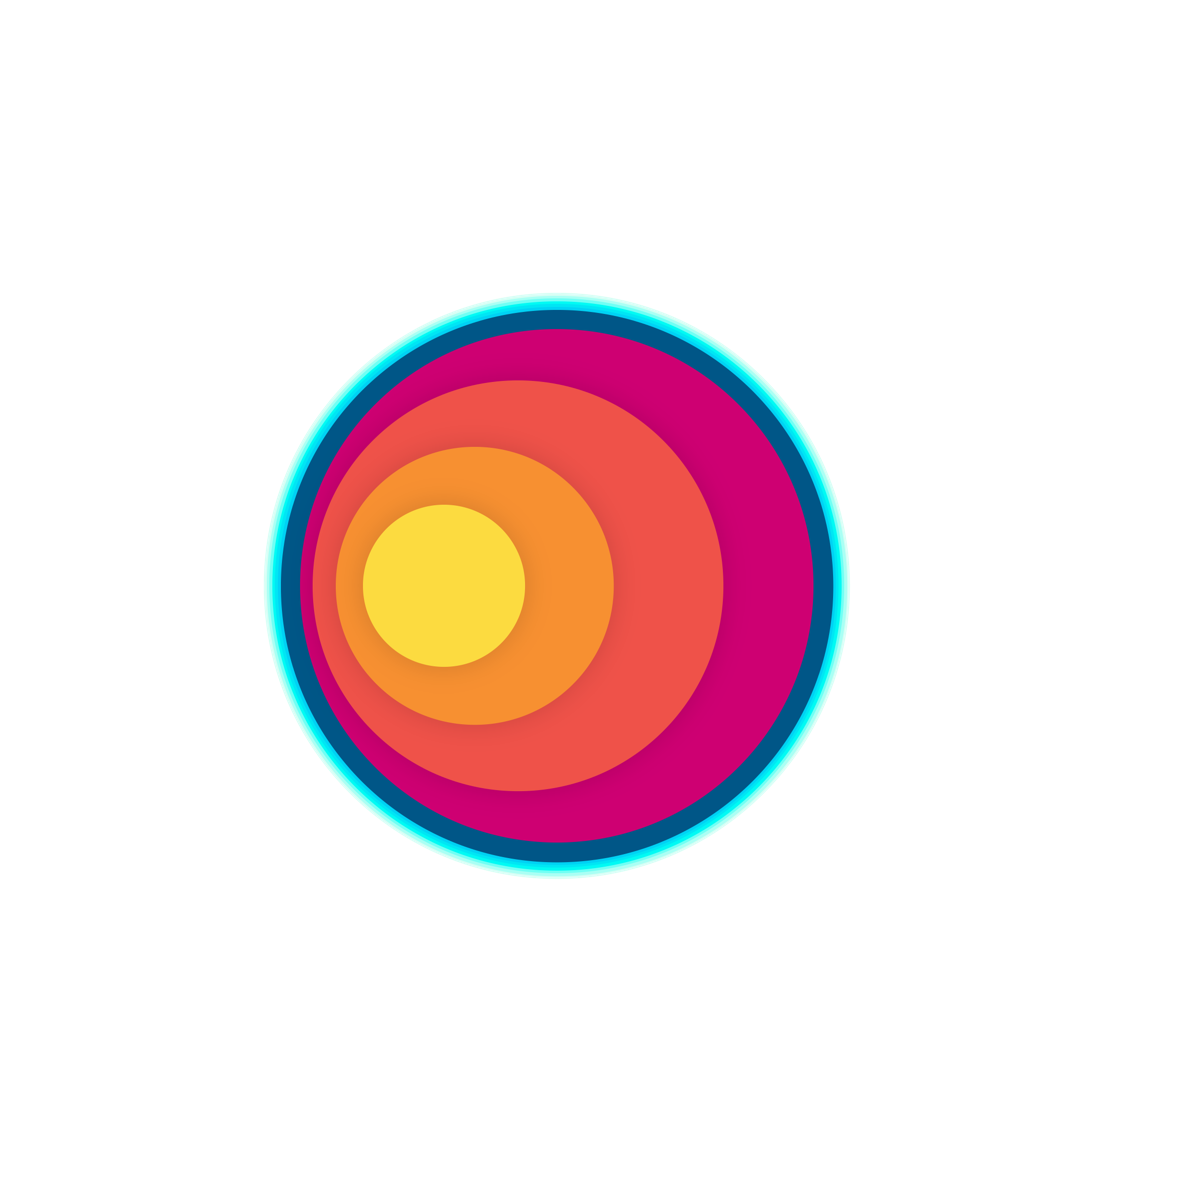 app_button_graphic1.png